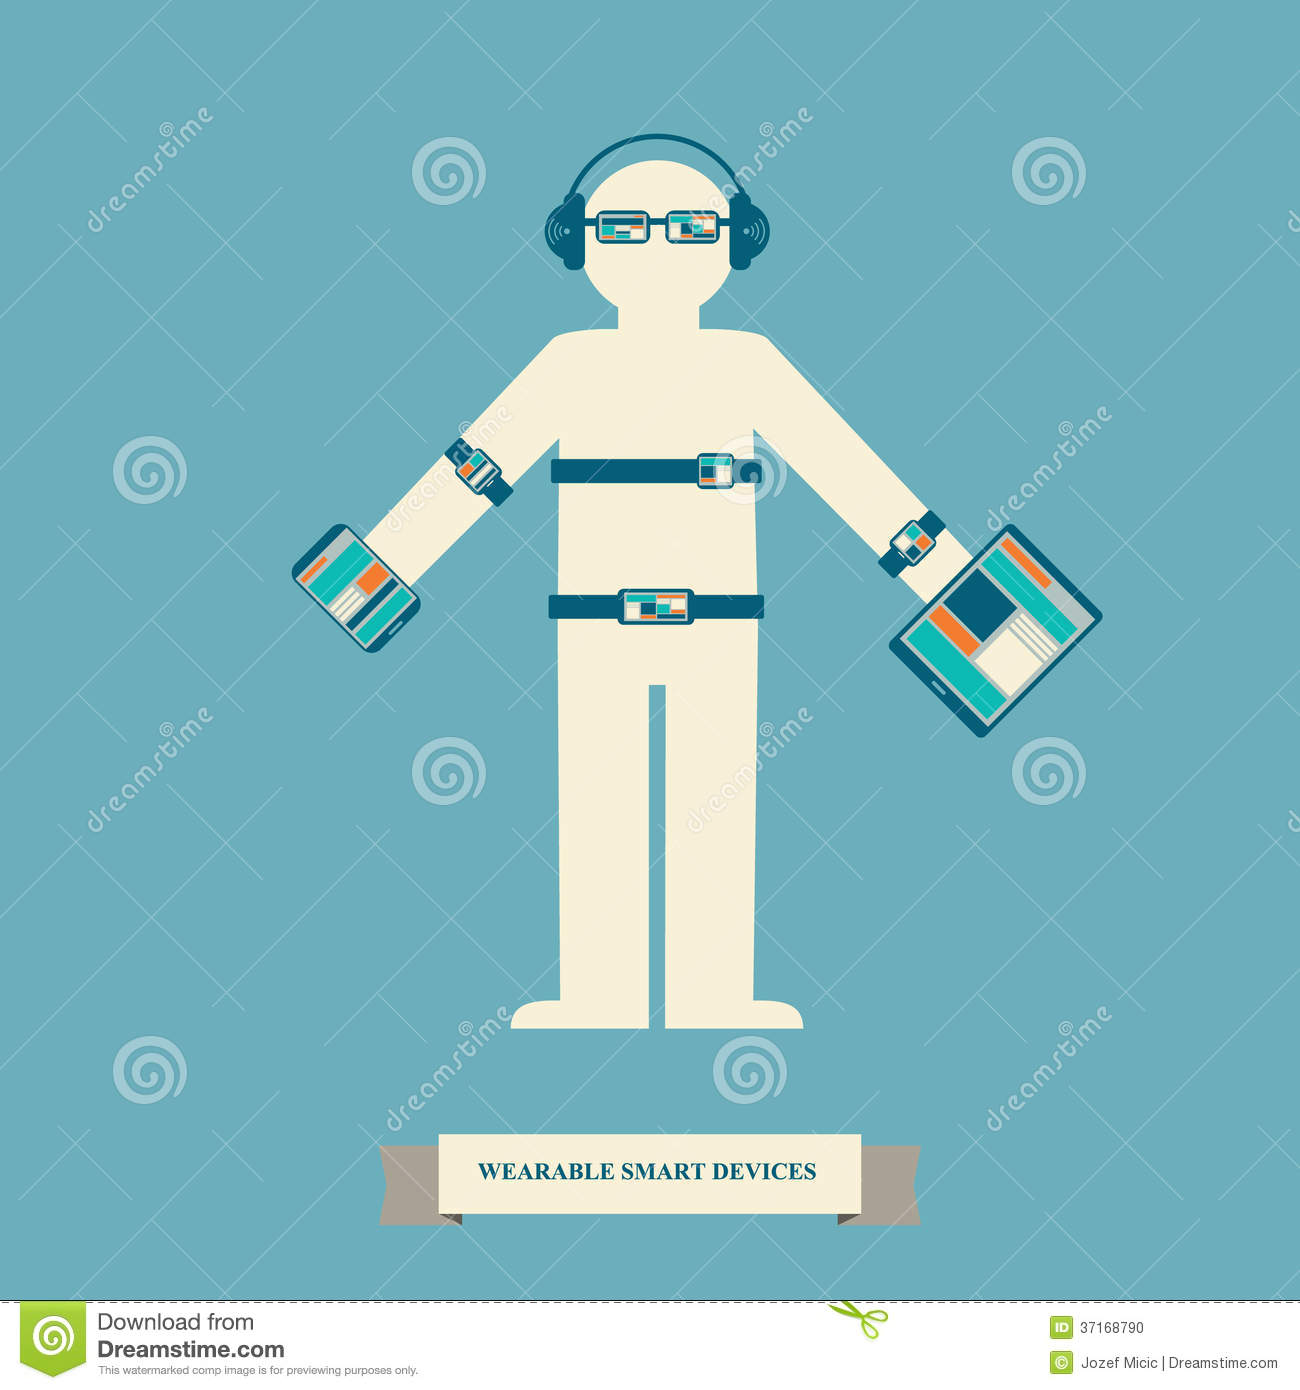 Smart Devices Clipart.